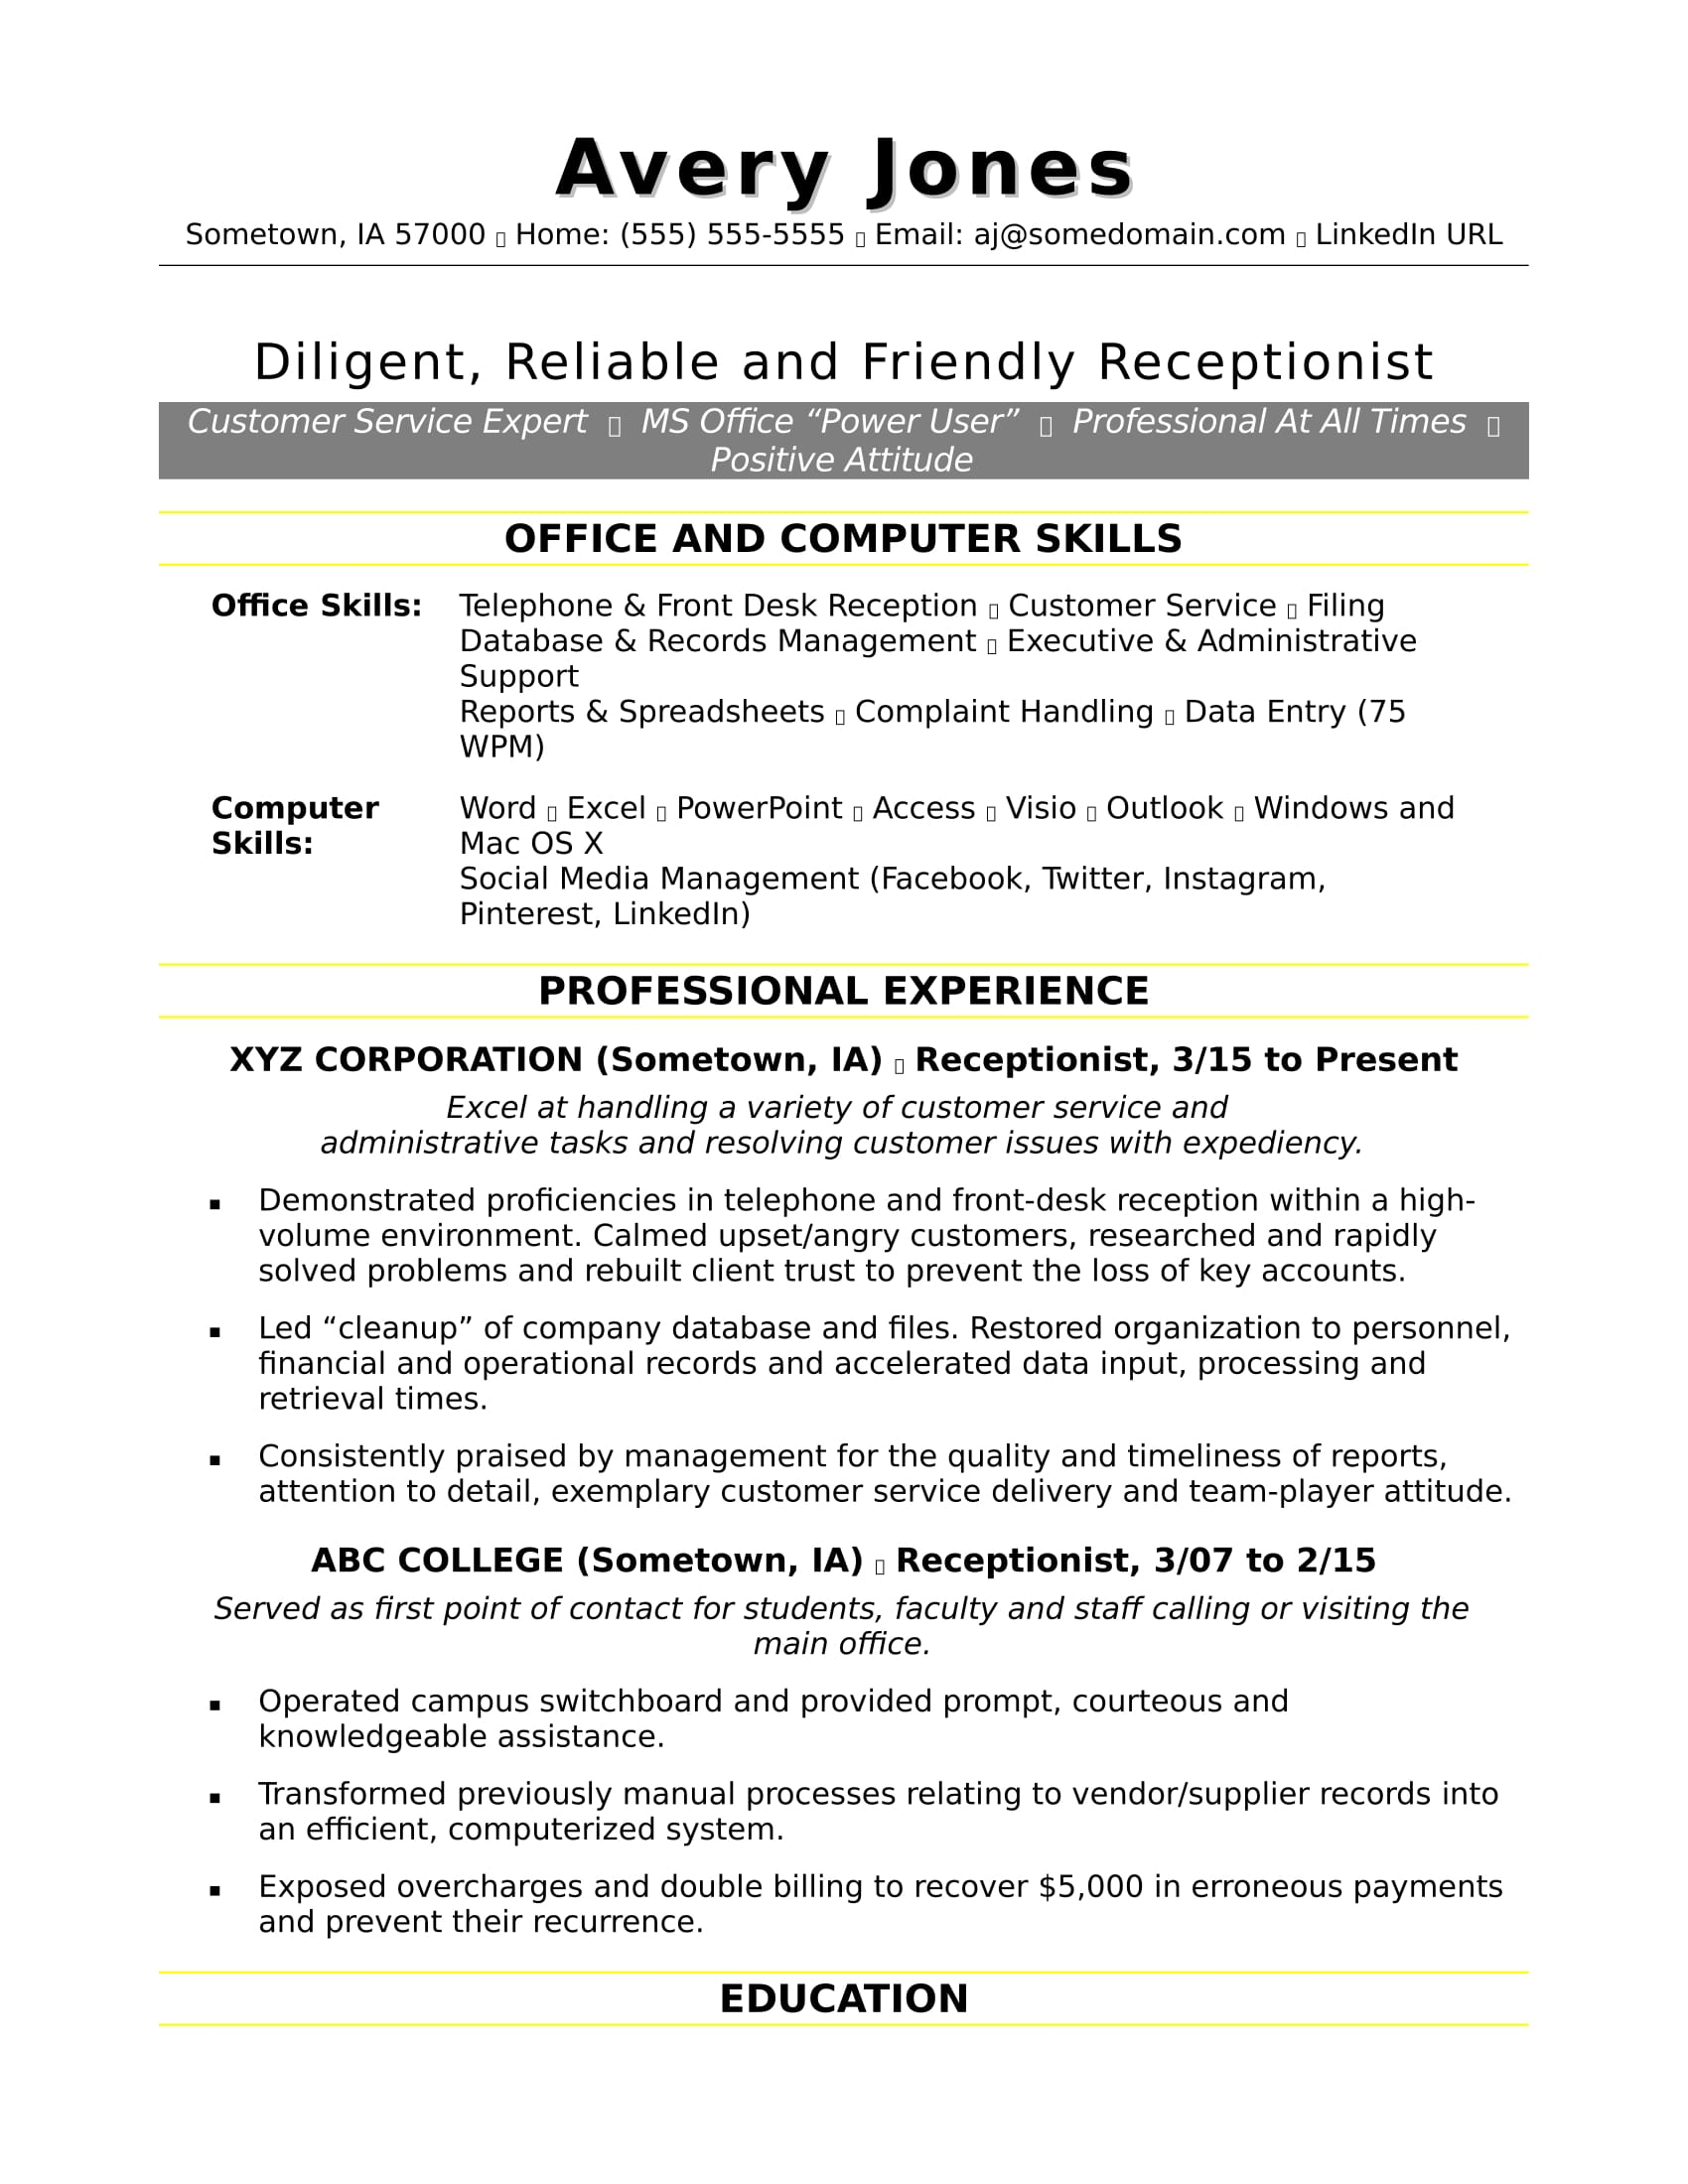 Sample Resume For A Receptionist  Monster Com Resume